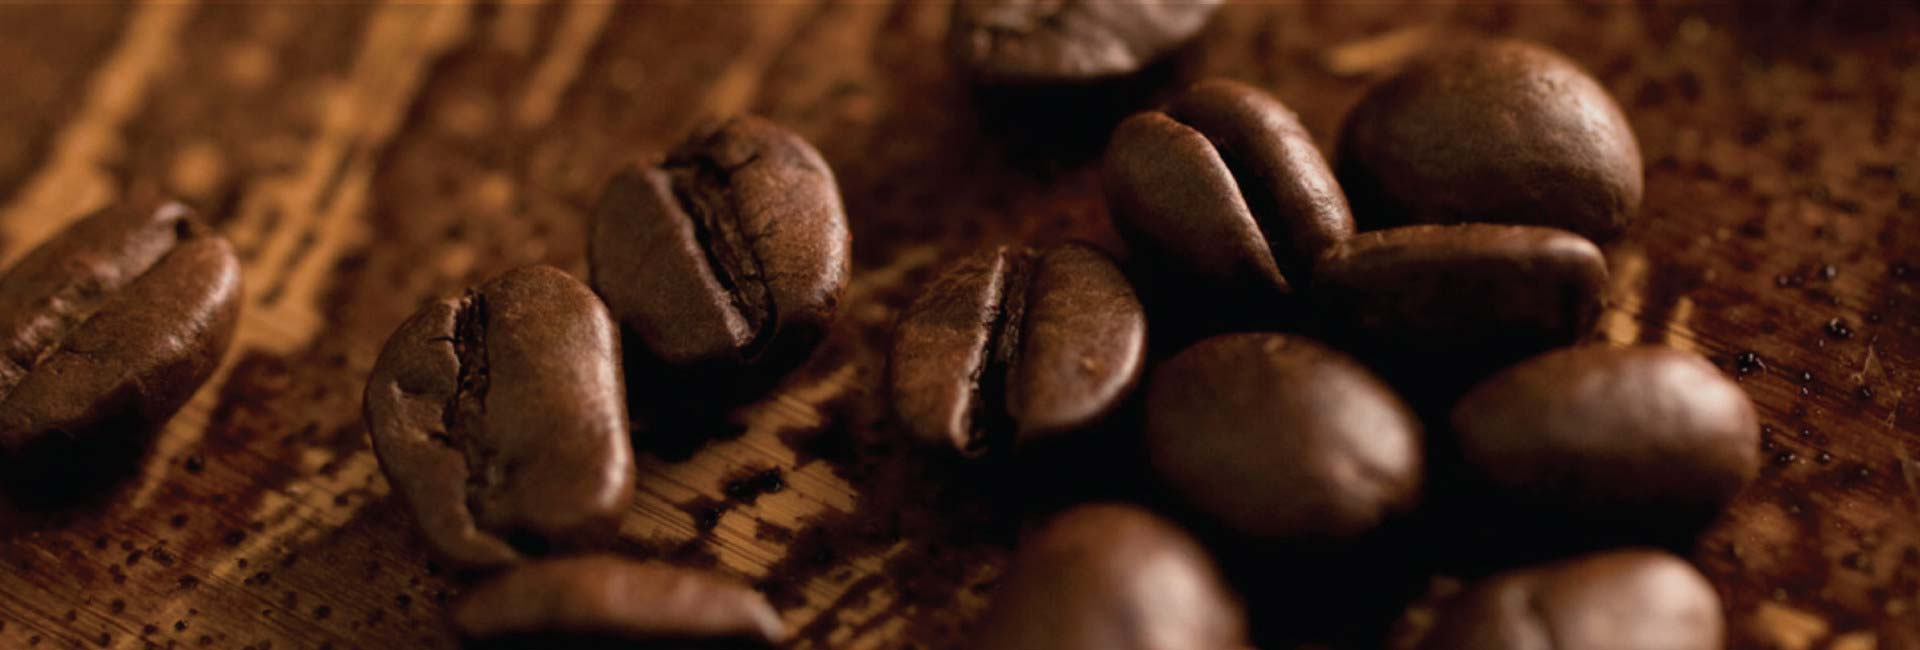 Café Coffe Day Coffee beans Banner